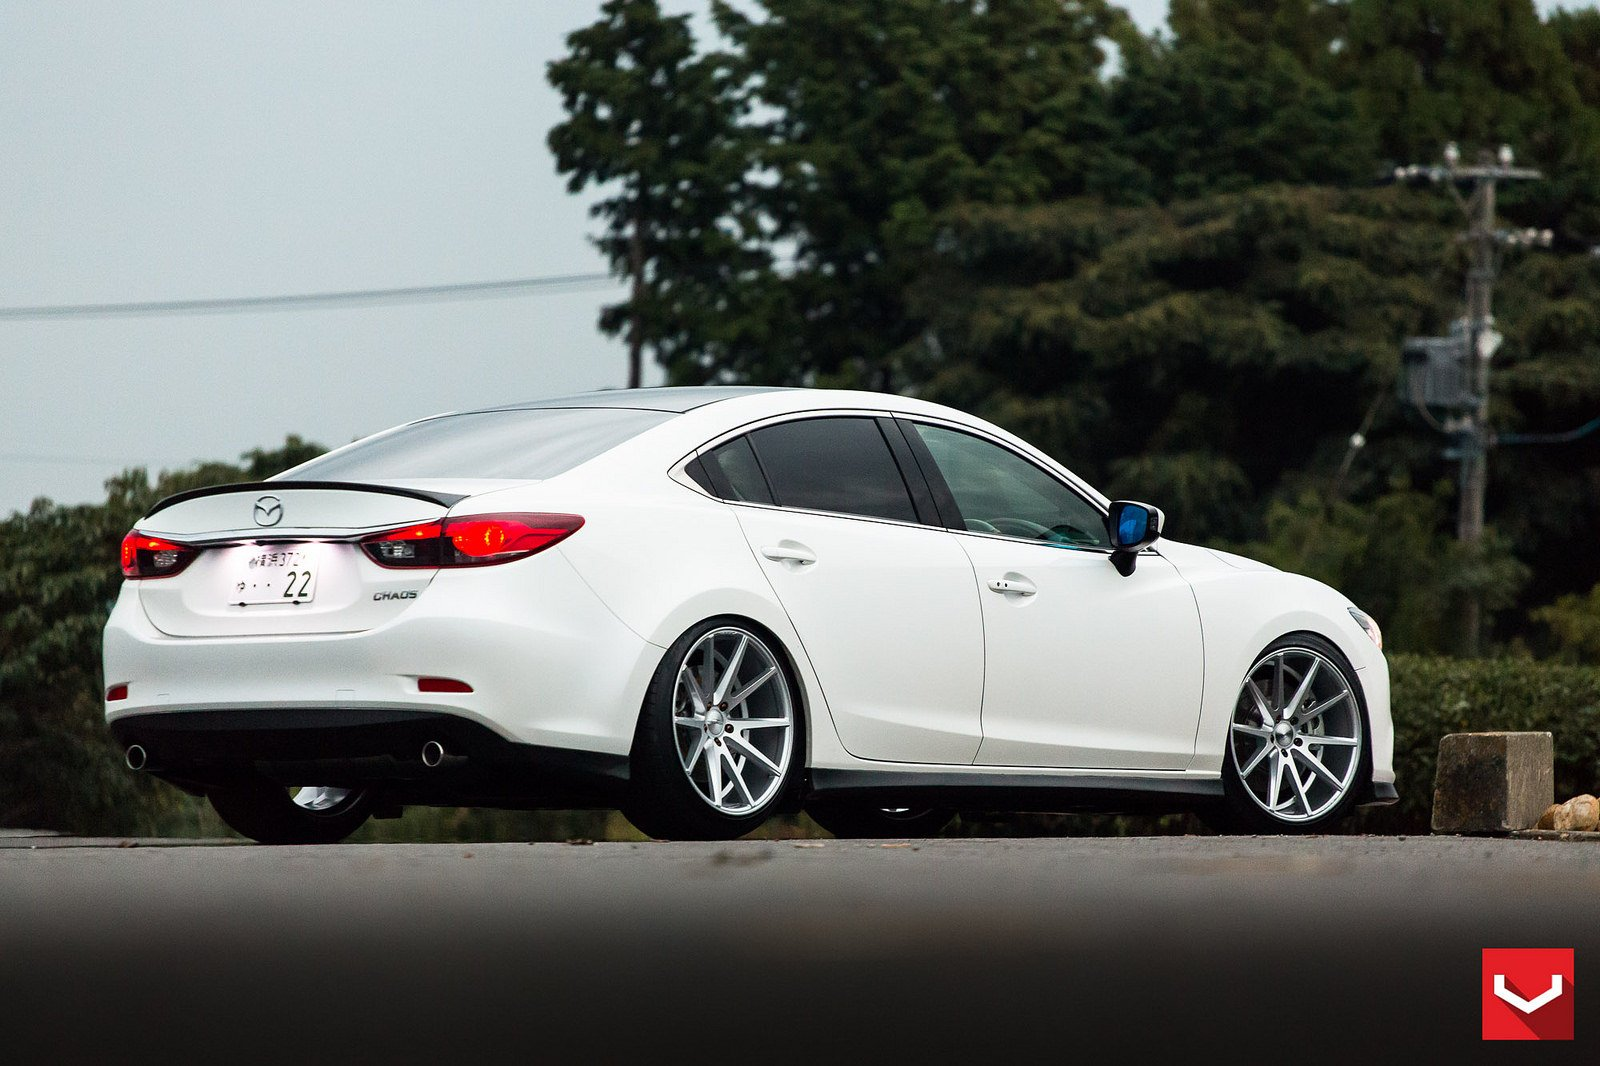 Mazda 3 Colors >> Vossen WHEELS Mazda 6 white tuning cars wallpaper | 1600x1066 | 664418 | WallpaperUP